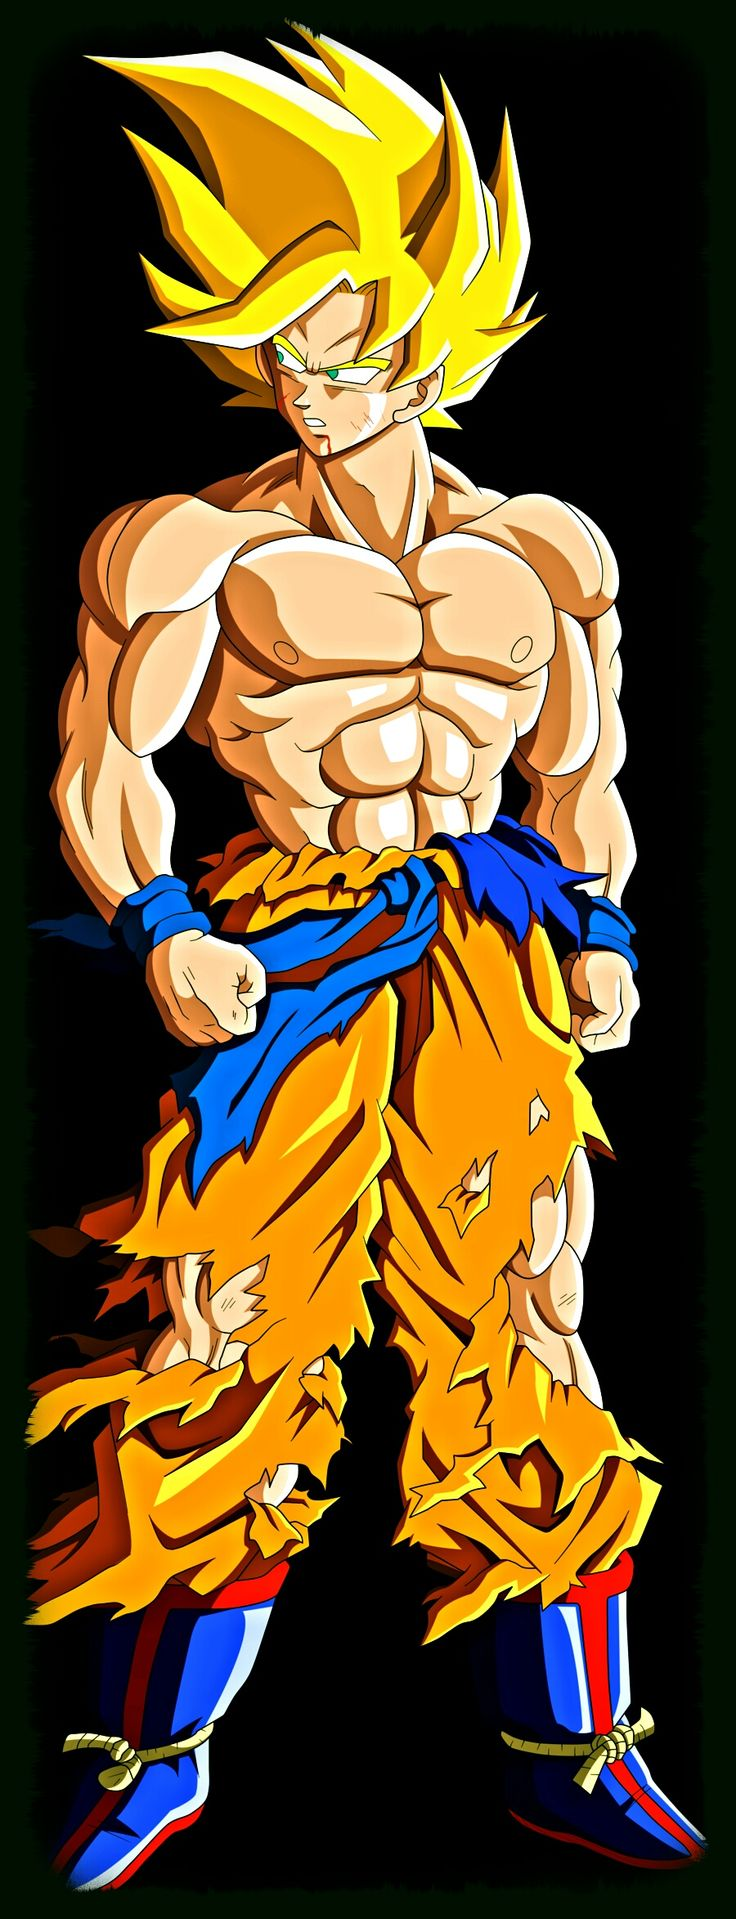 17 Best Images About Goku On Pinterest Piccolo Goku Wallpaper